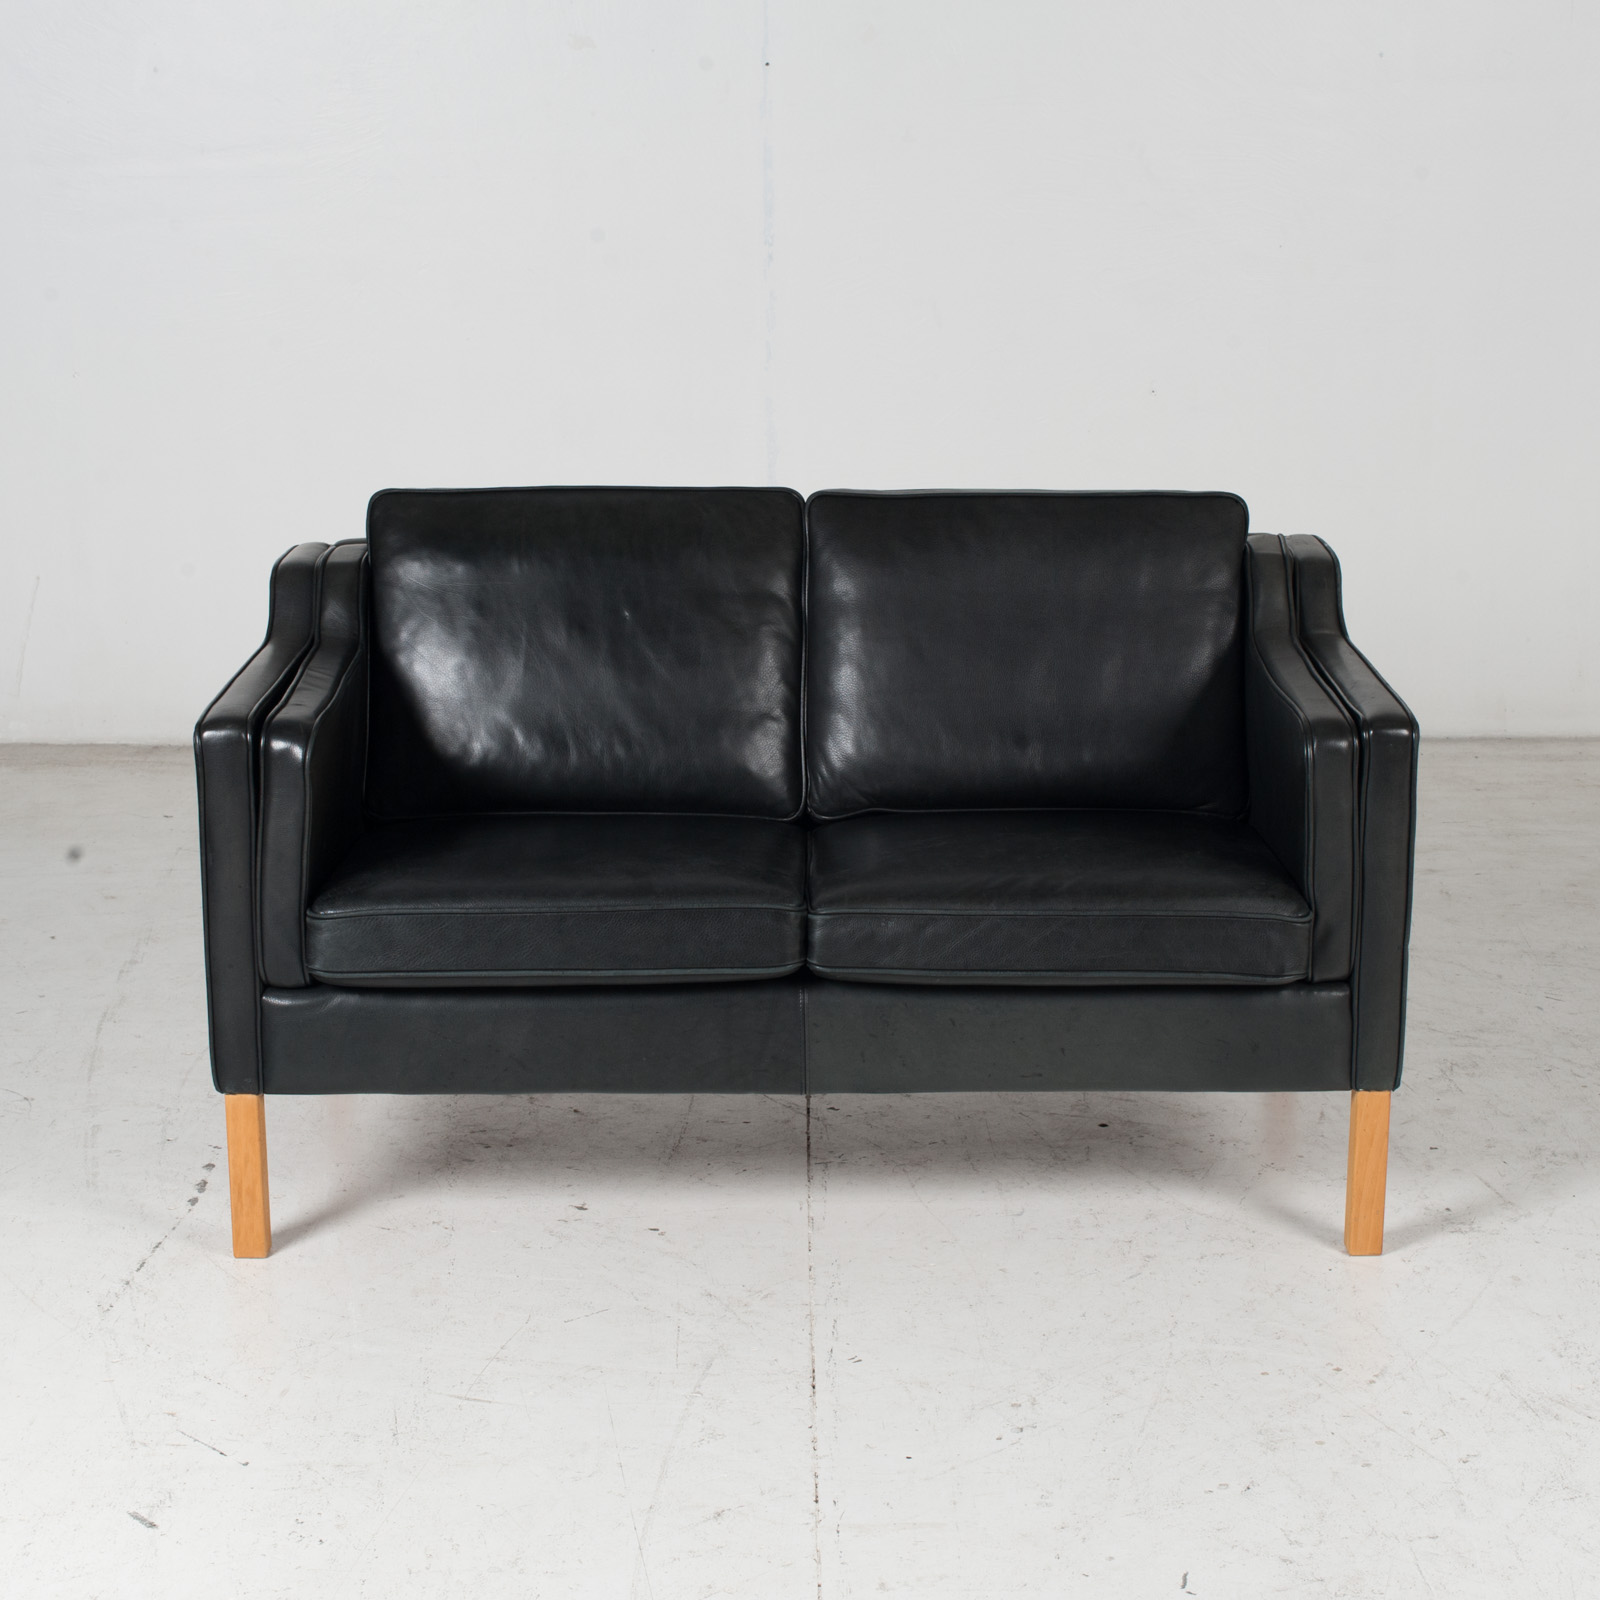 2 Seat Sofa By Stouby In Black Leather, 1960s, Denmark 2